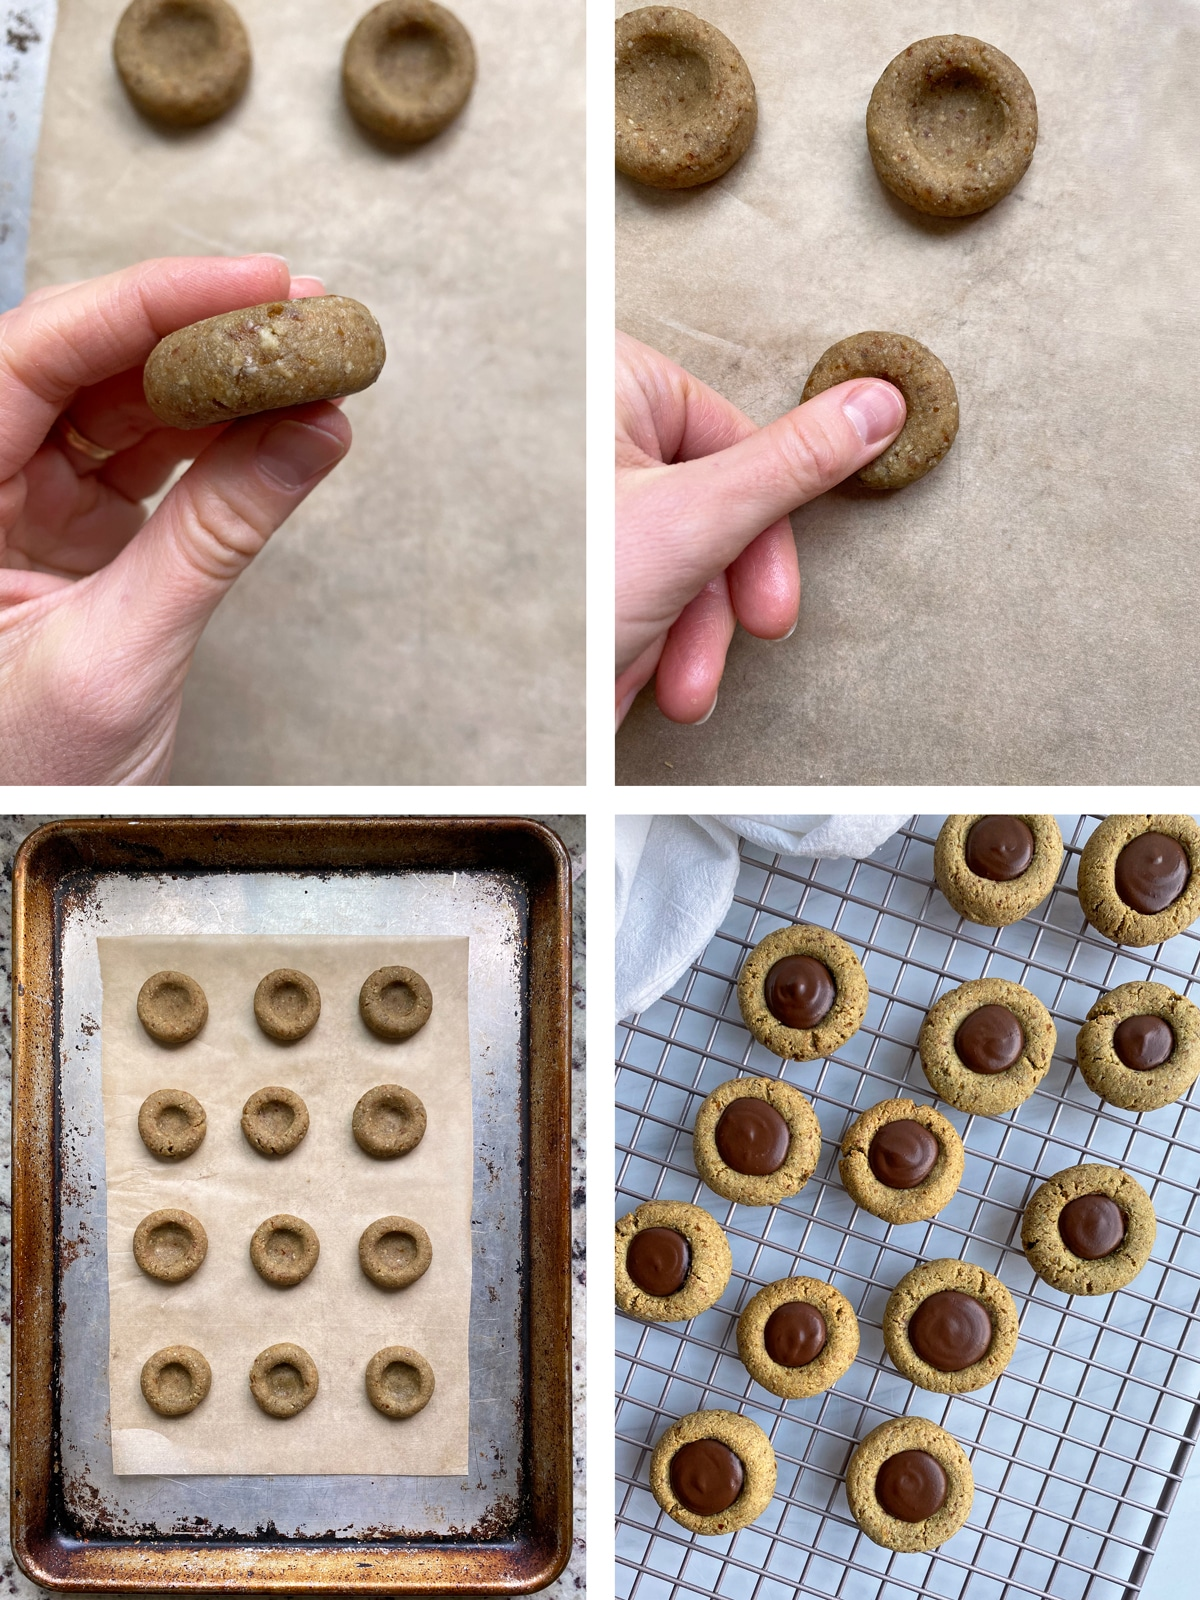 shaping-and-baking-the-cookies